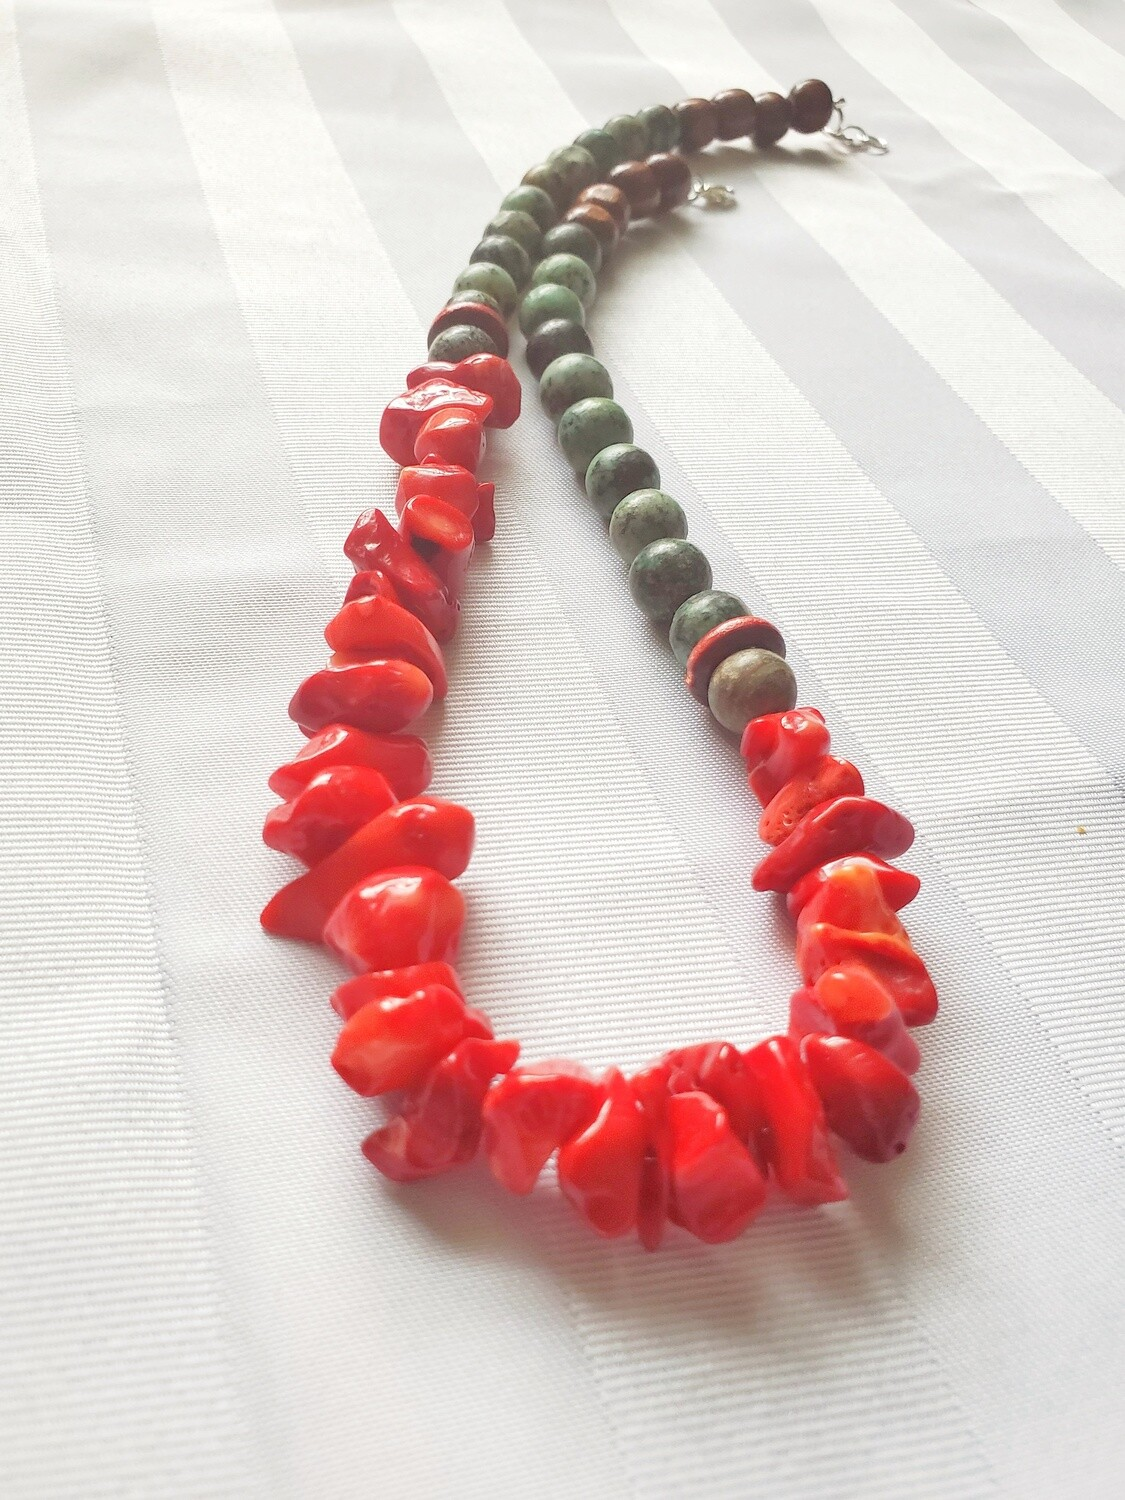 Red Coral Beads, African Turquoise and Wooden Beads Handmade Necklace